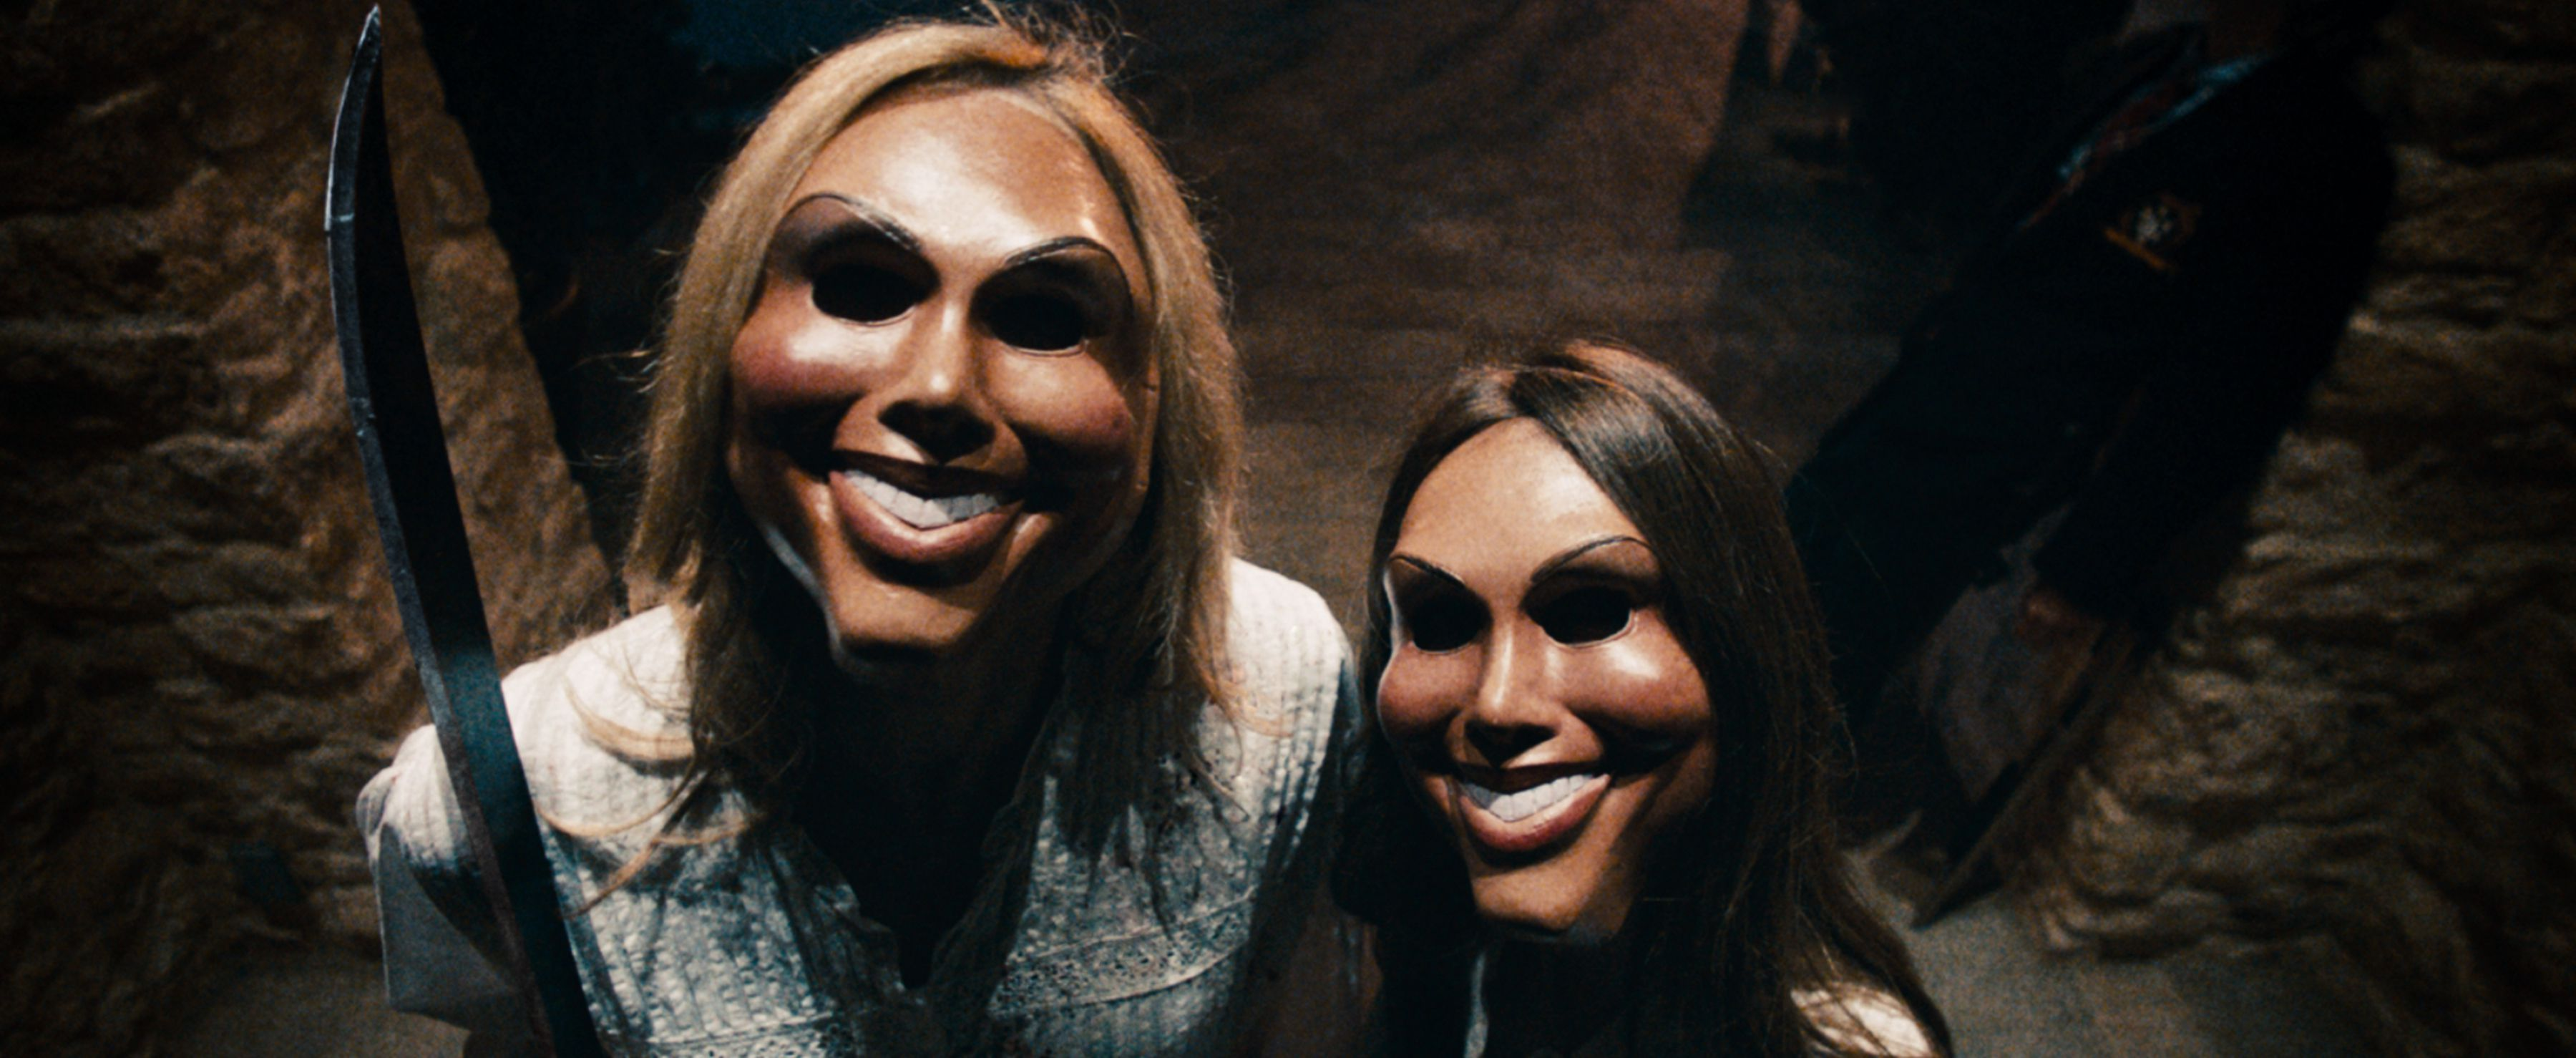 An image from The Purge